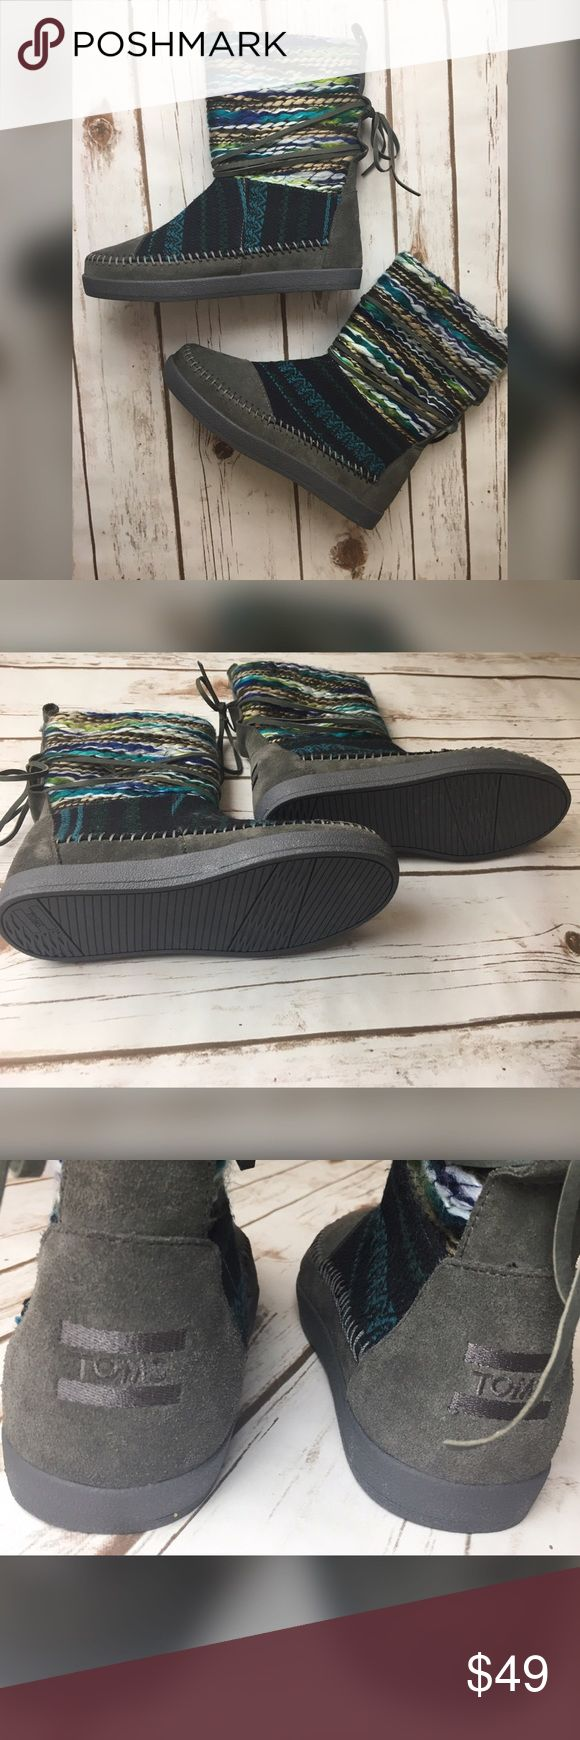 """New women's Toms Nepal boots size 5 Gorgeous women Toms """"Nepal boots"""" size 5. Woven Suede. New never worn TOMS Shoes Ankle Boots & Booties"""